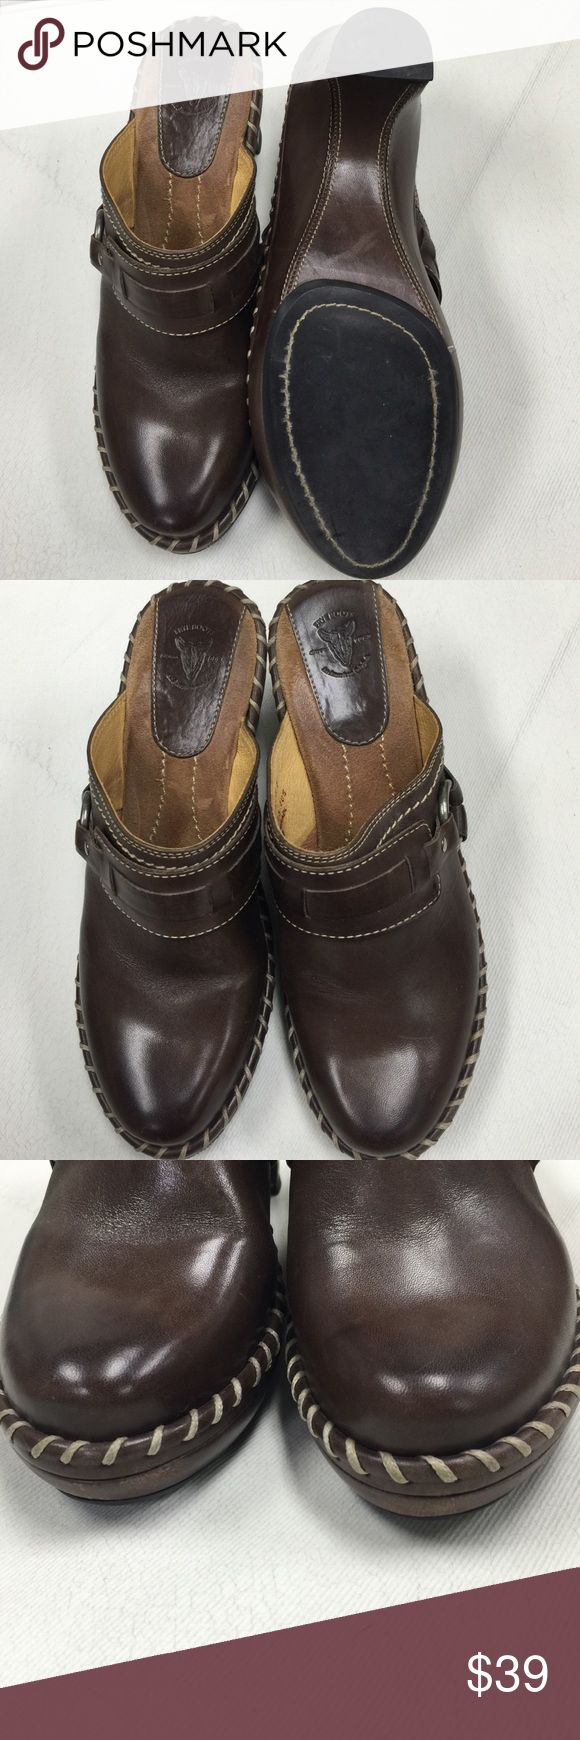 *FRYE* brown leather mule clog sz 7 1/2 wedge heel Gorgeous clogs shoe by FRYE.  These feature a whip stitch and silver o-ring that gives these an equestrian western cowboy look. Frye Shoes Mules & Clogs